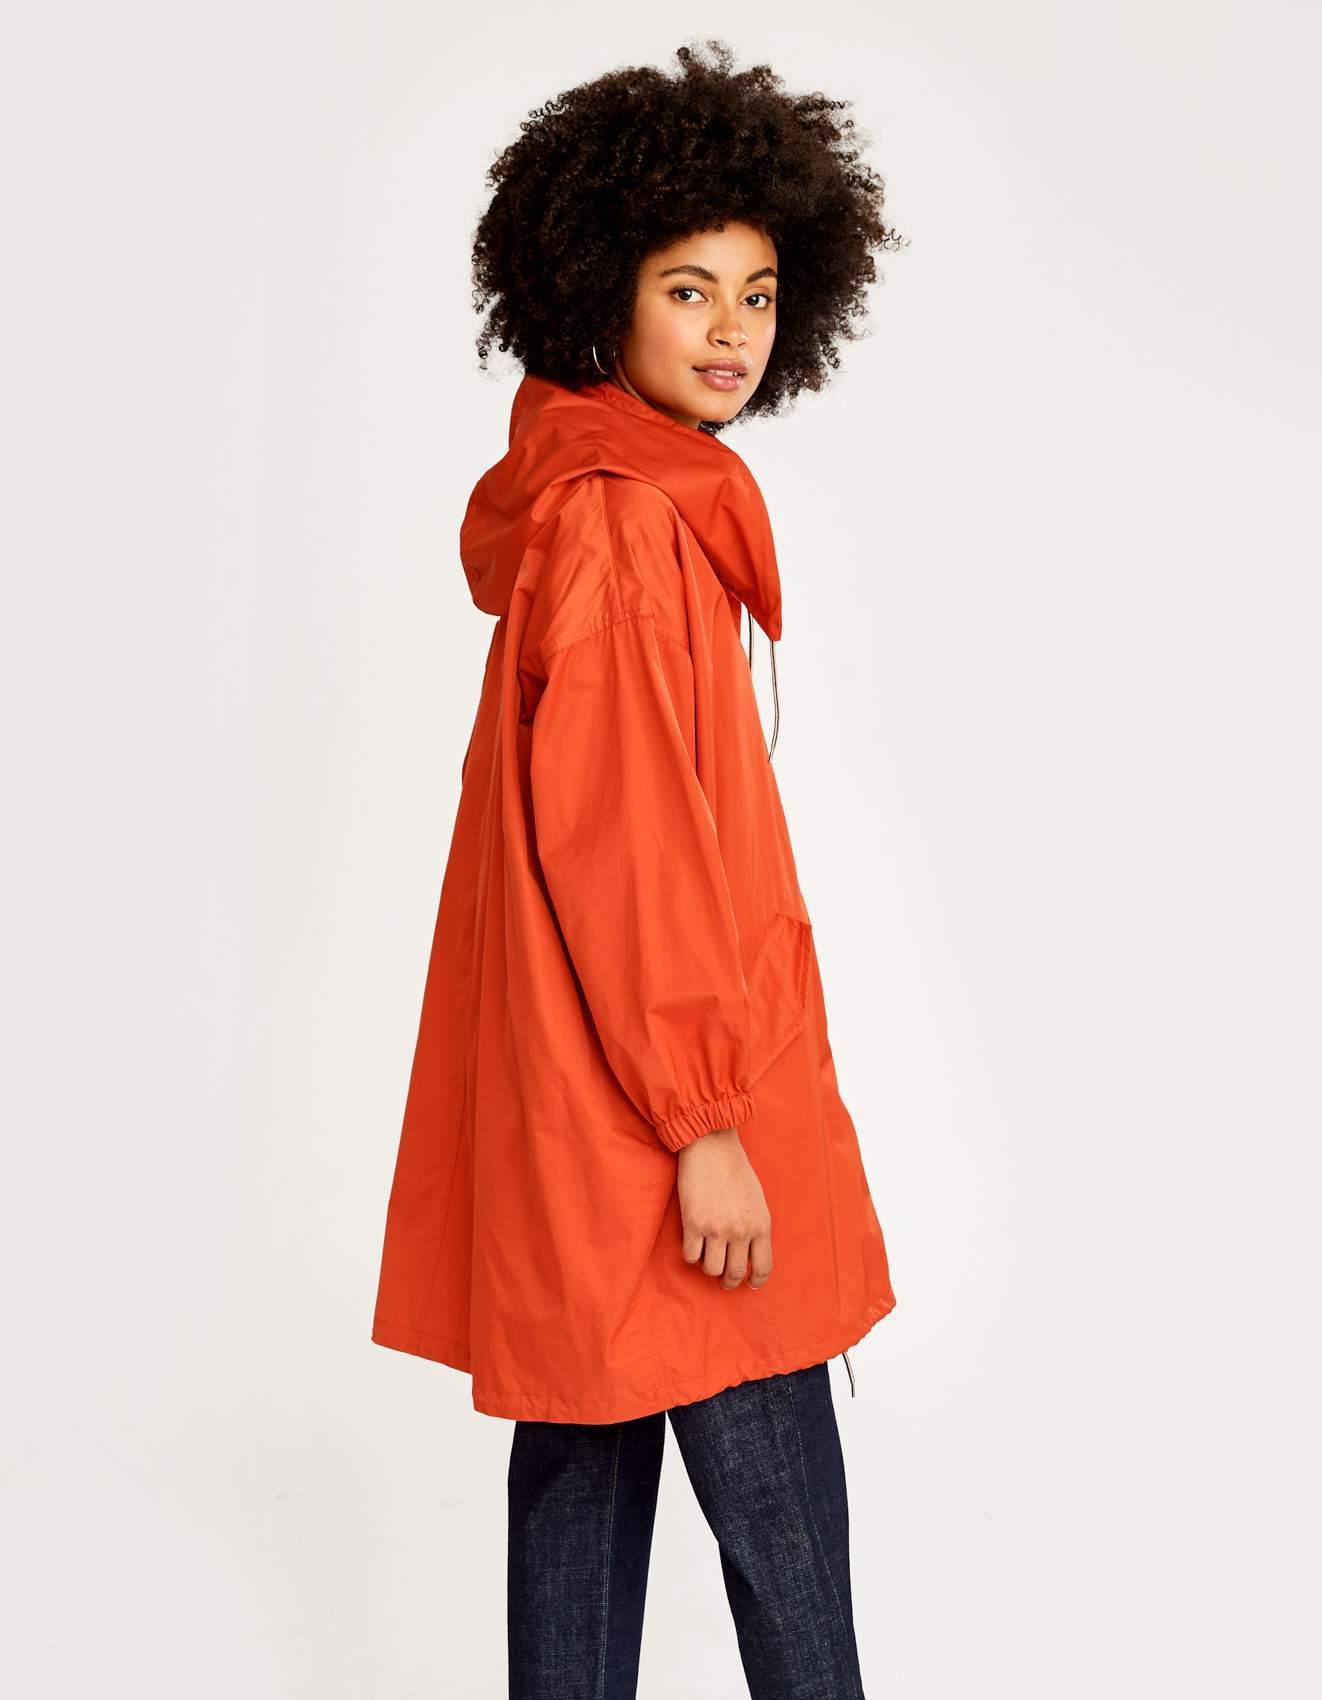 Bellerose red military inspired parka for women